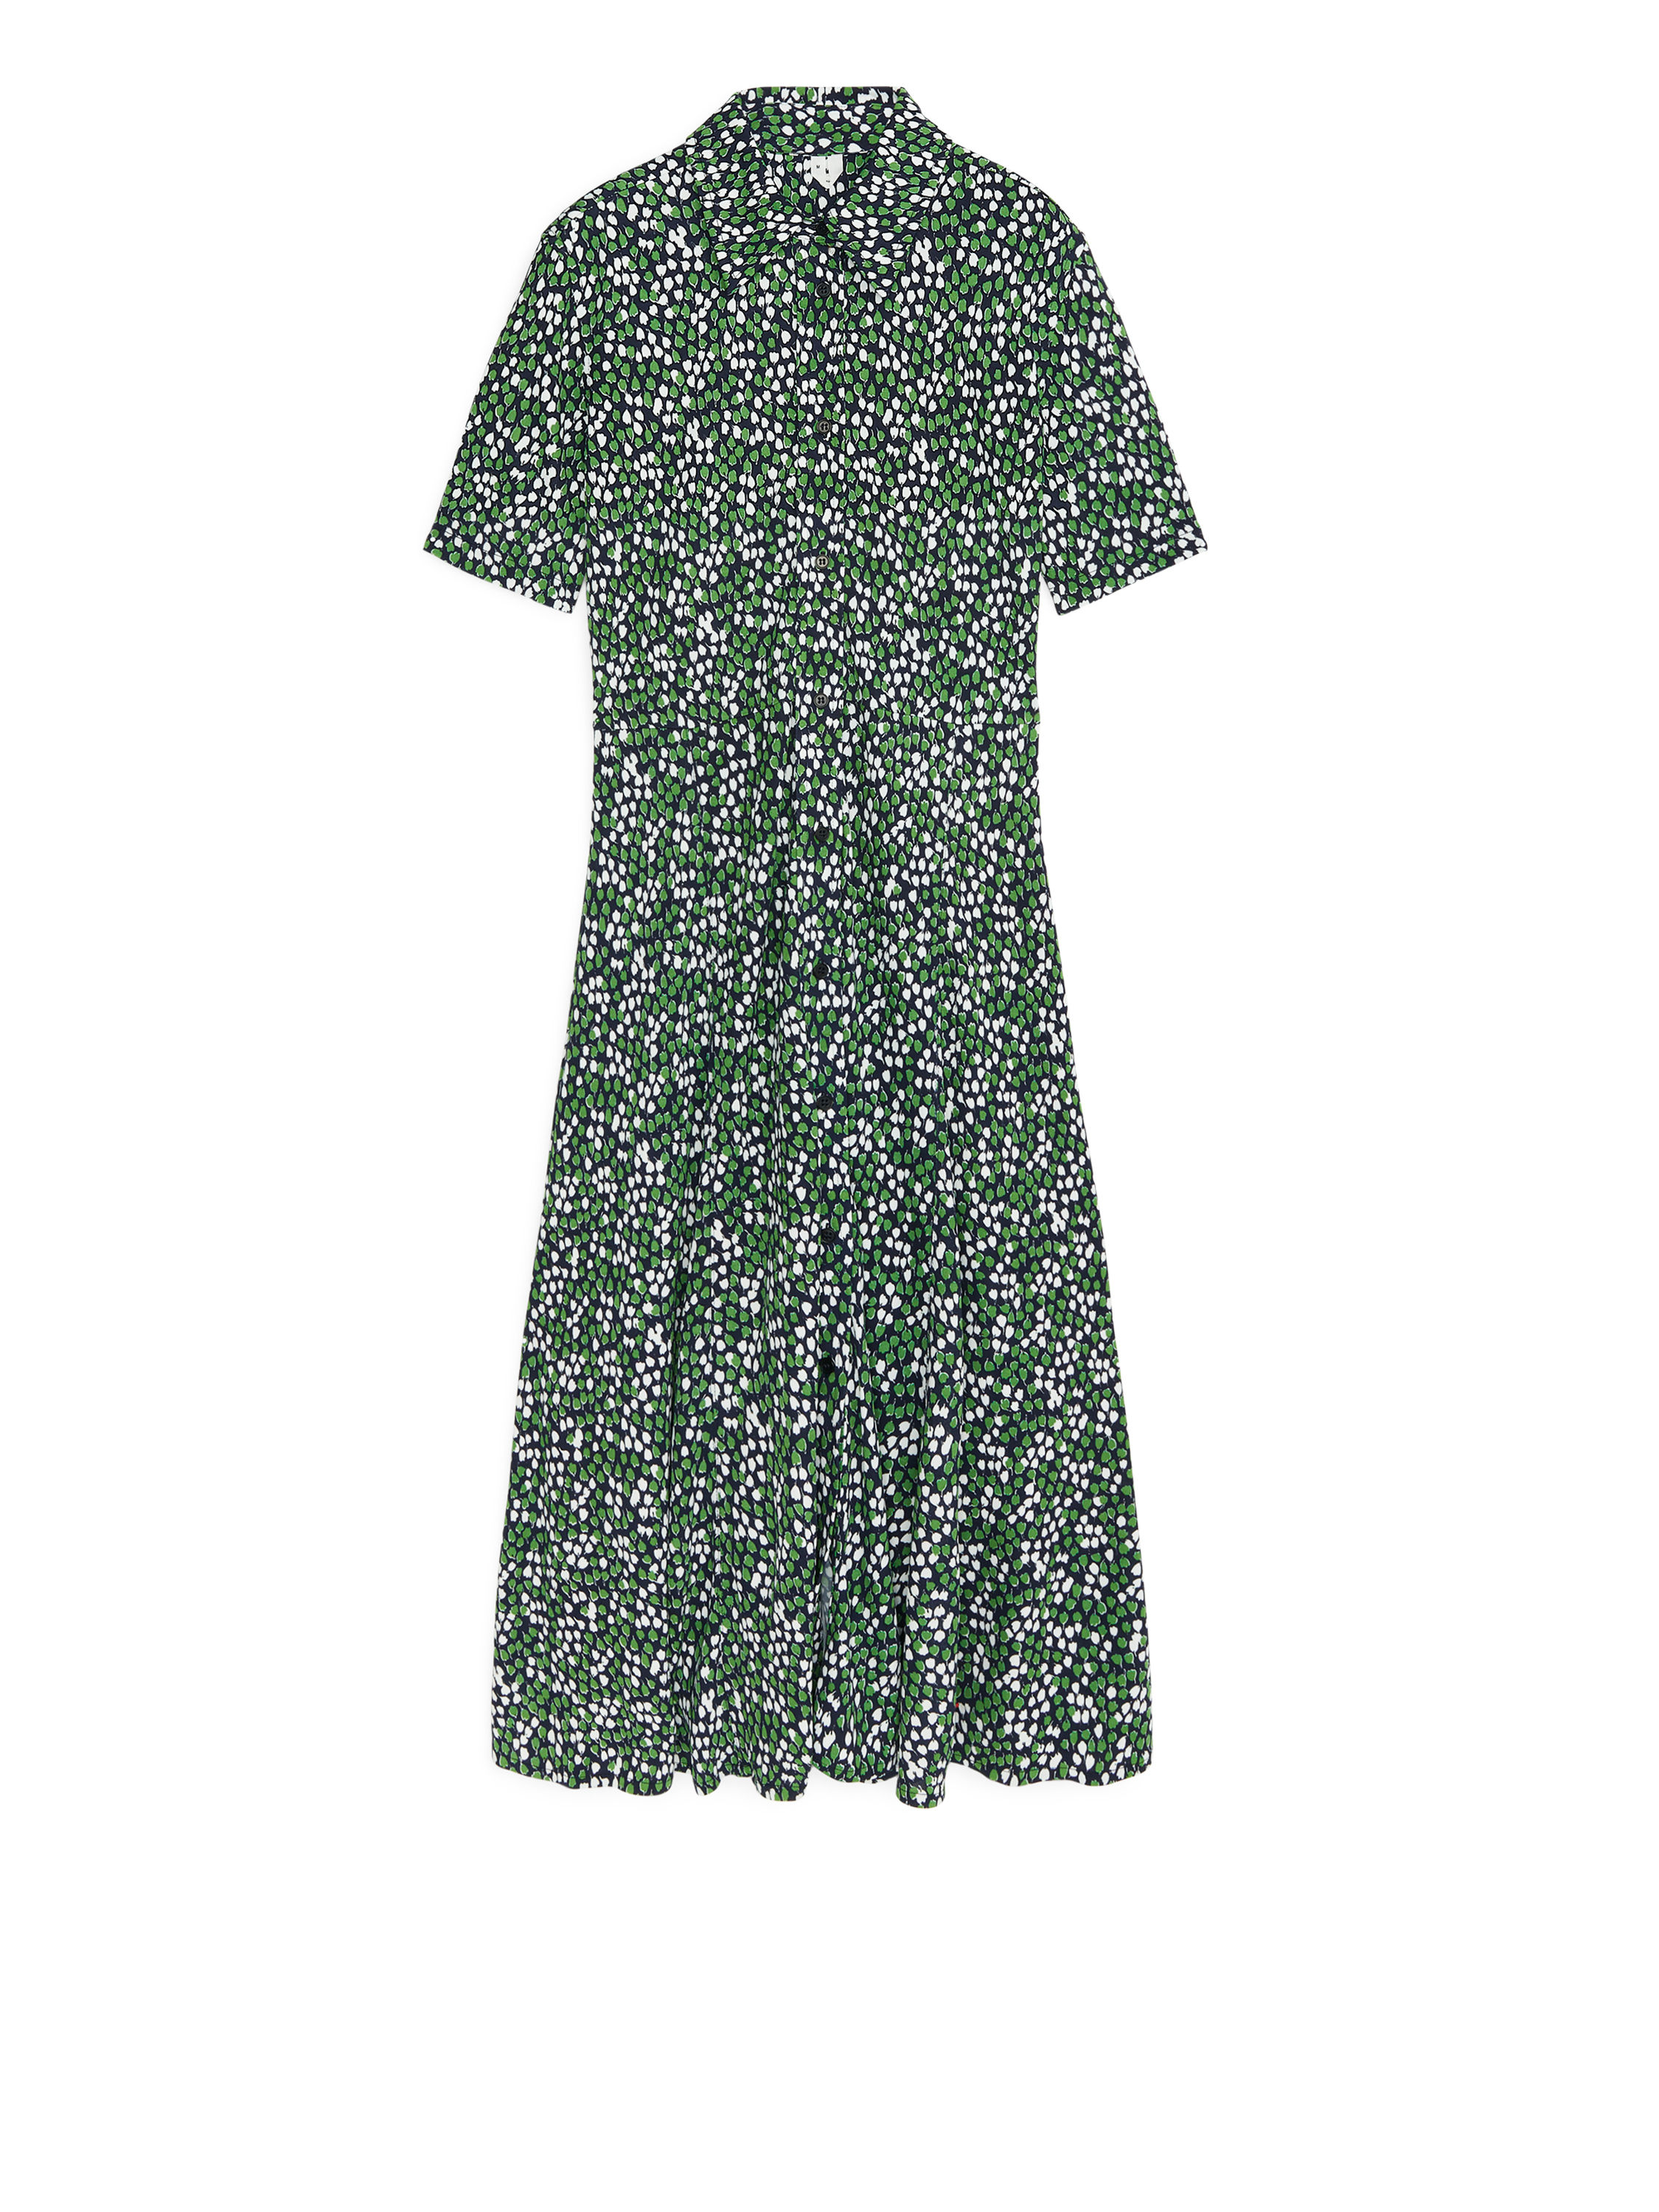 Fabric Swatch image of Arket floral jersey shirt dress in green